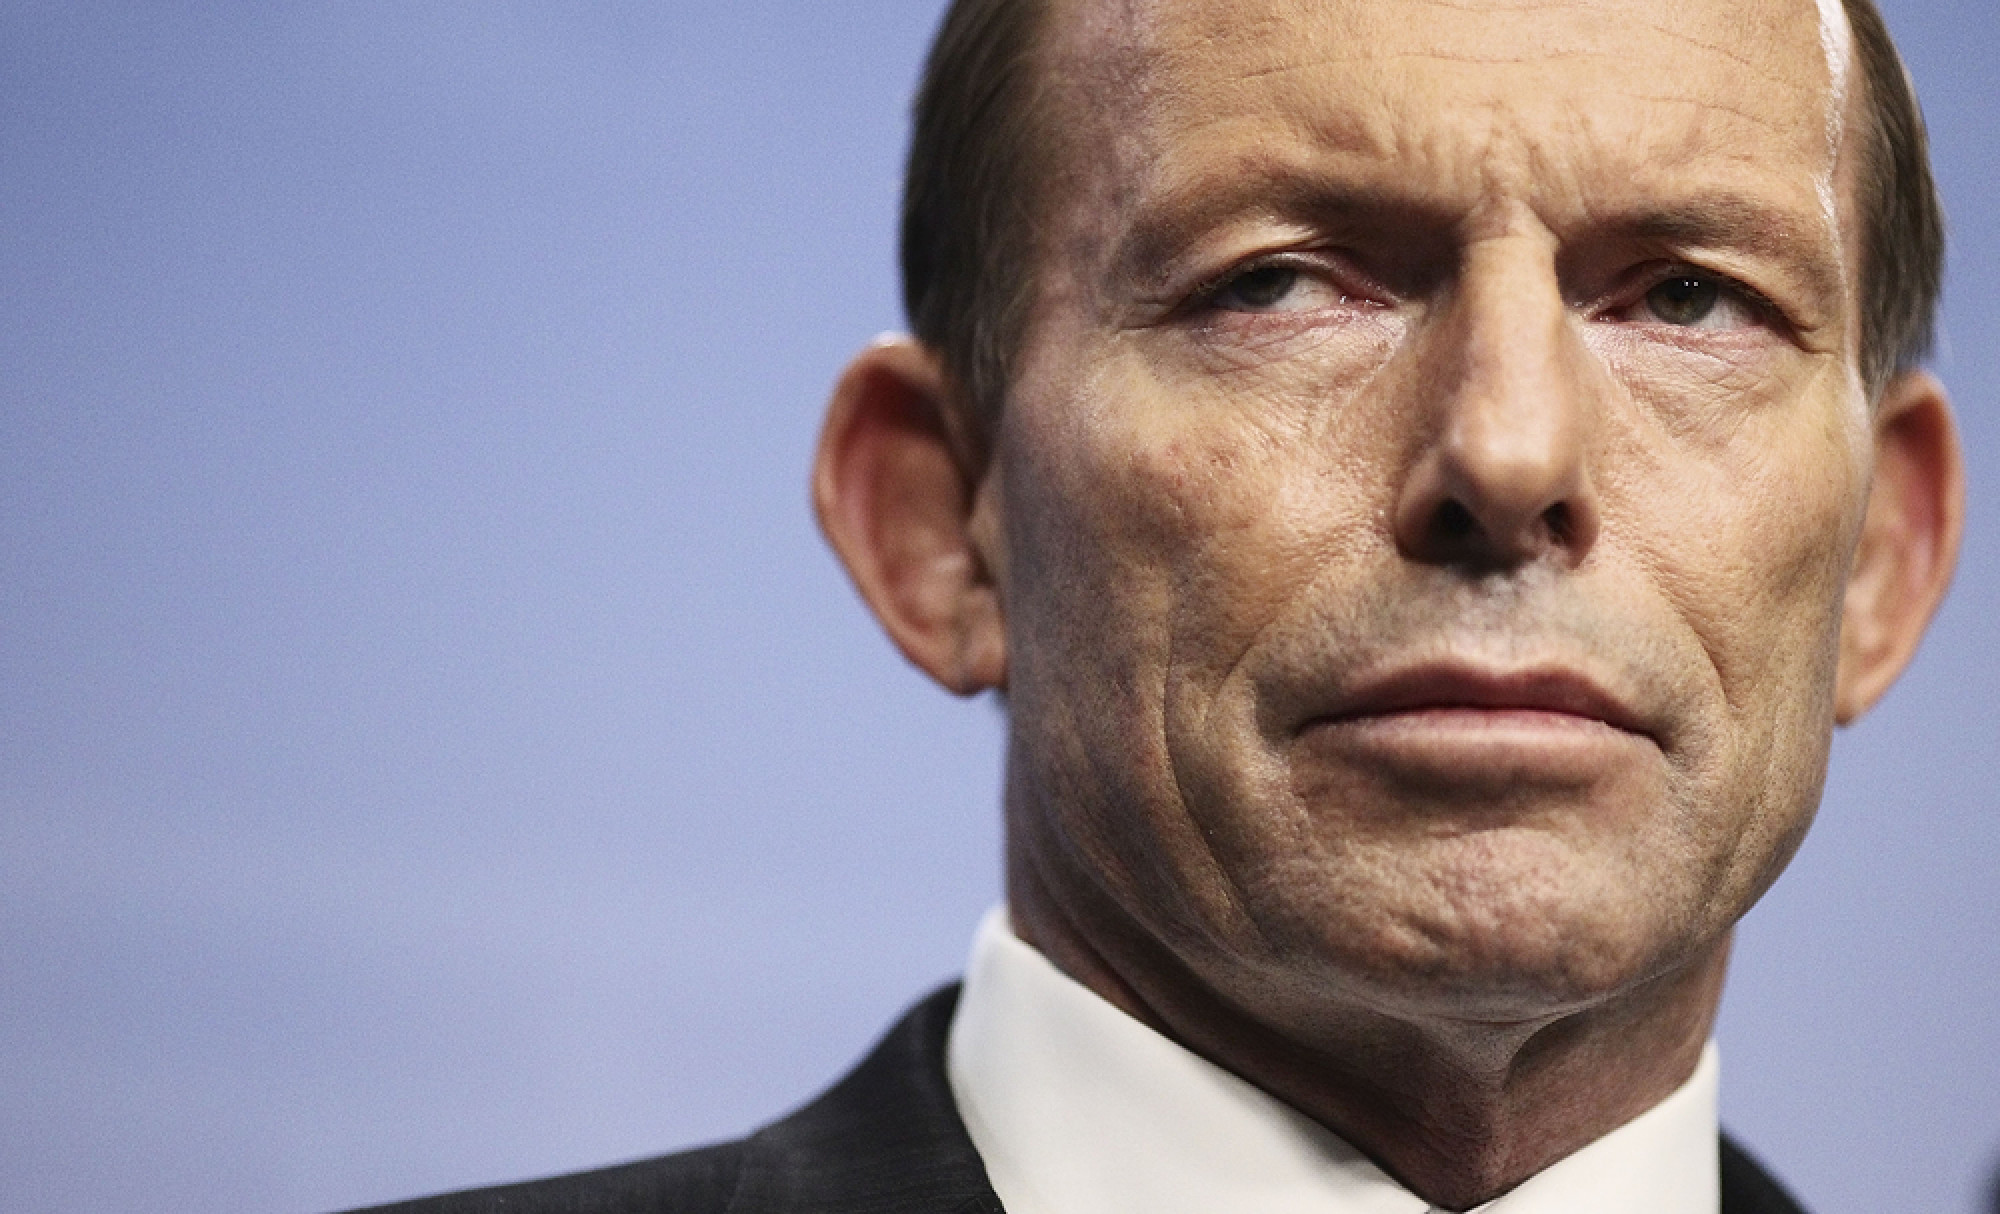 Tony Abbott Wants An Alliance With UK That Limits Action Over Climate Change 'Crap' - o-TONY-ABBOTT-facebook